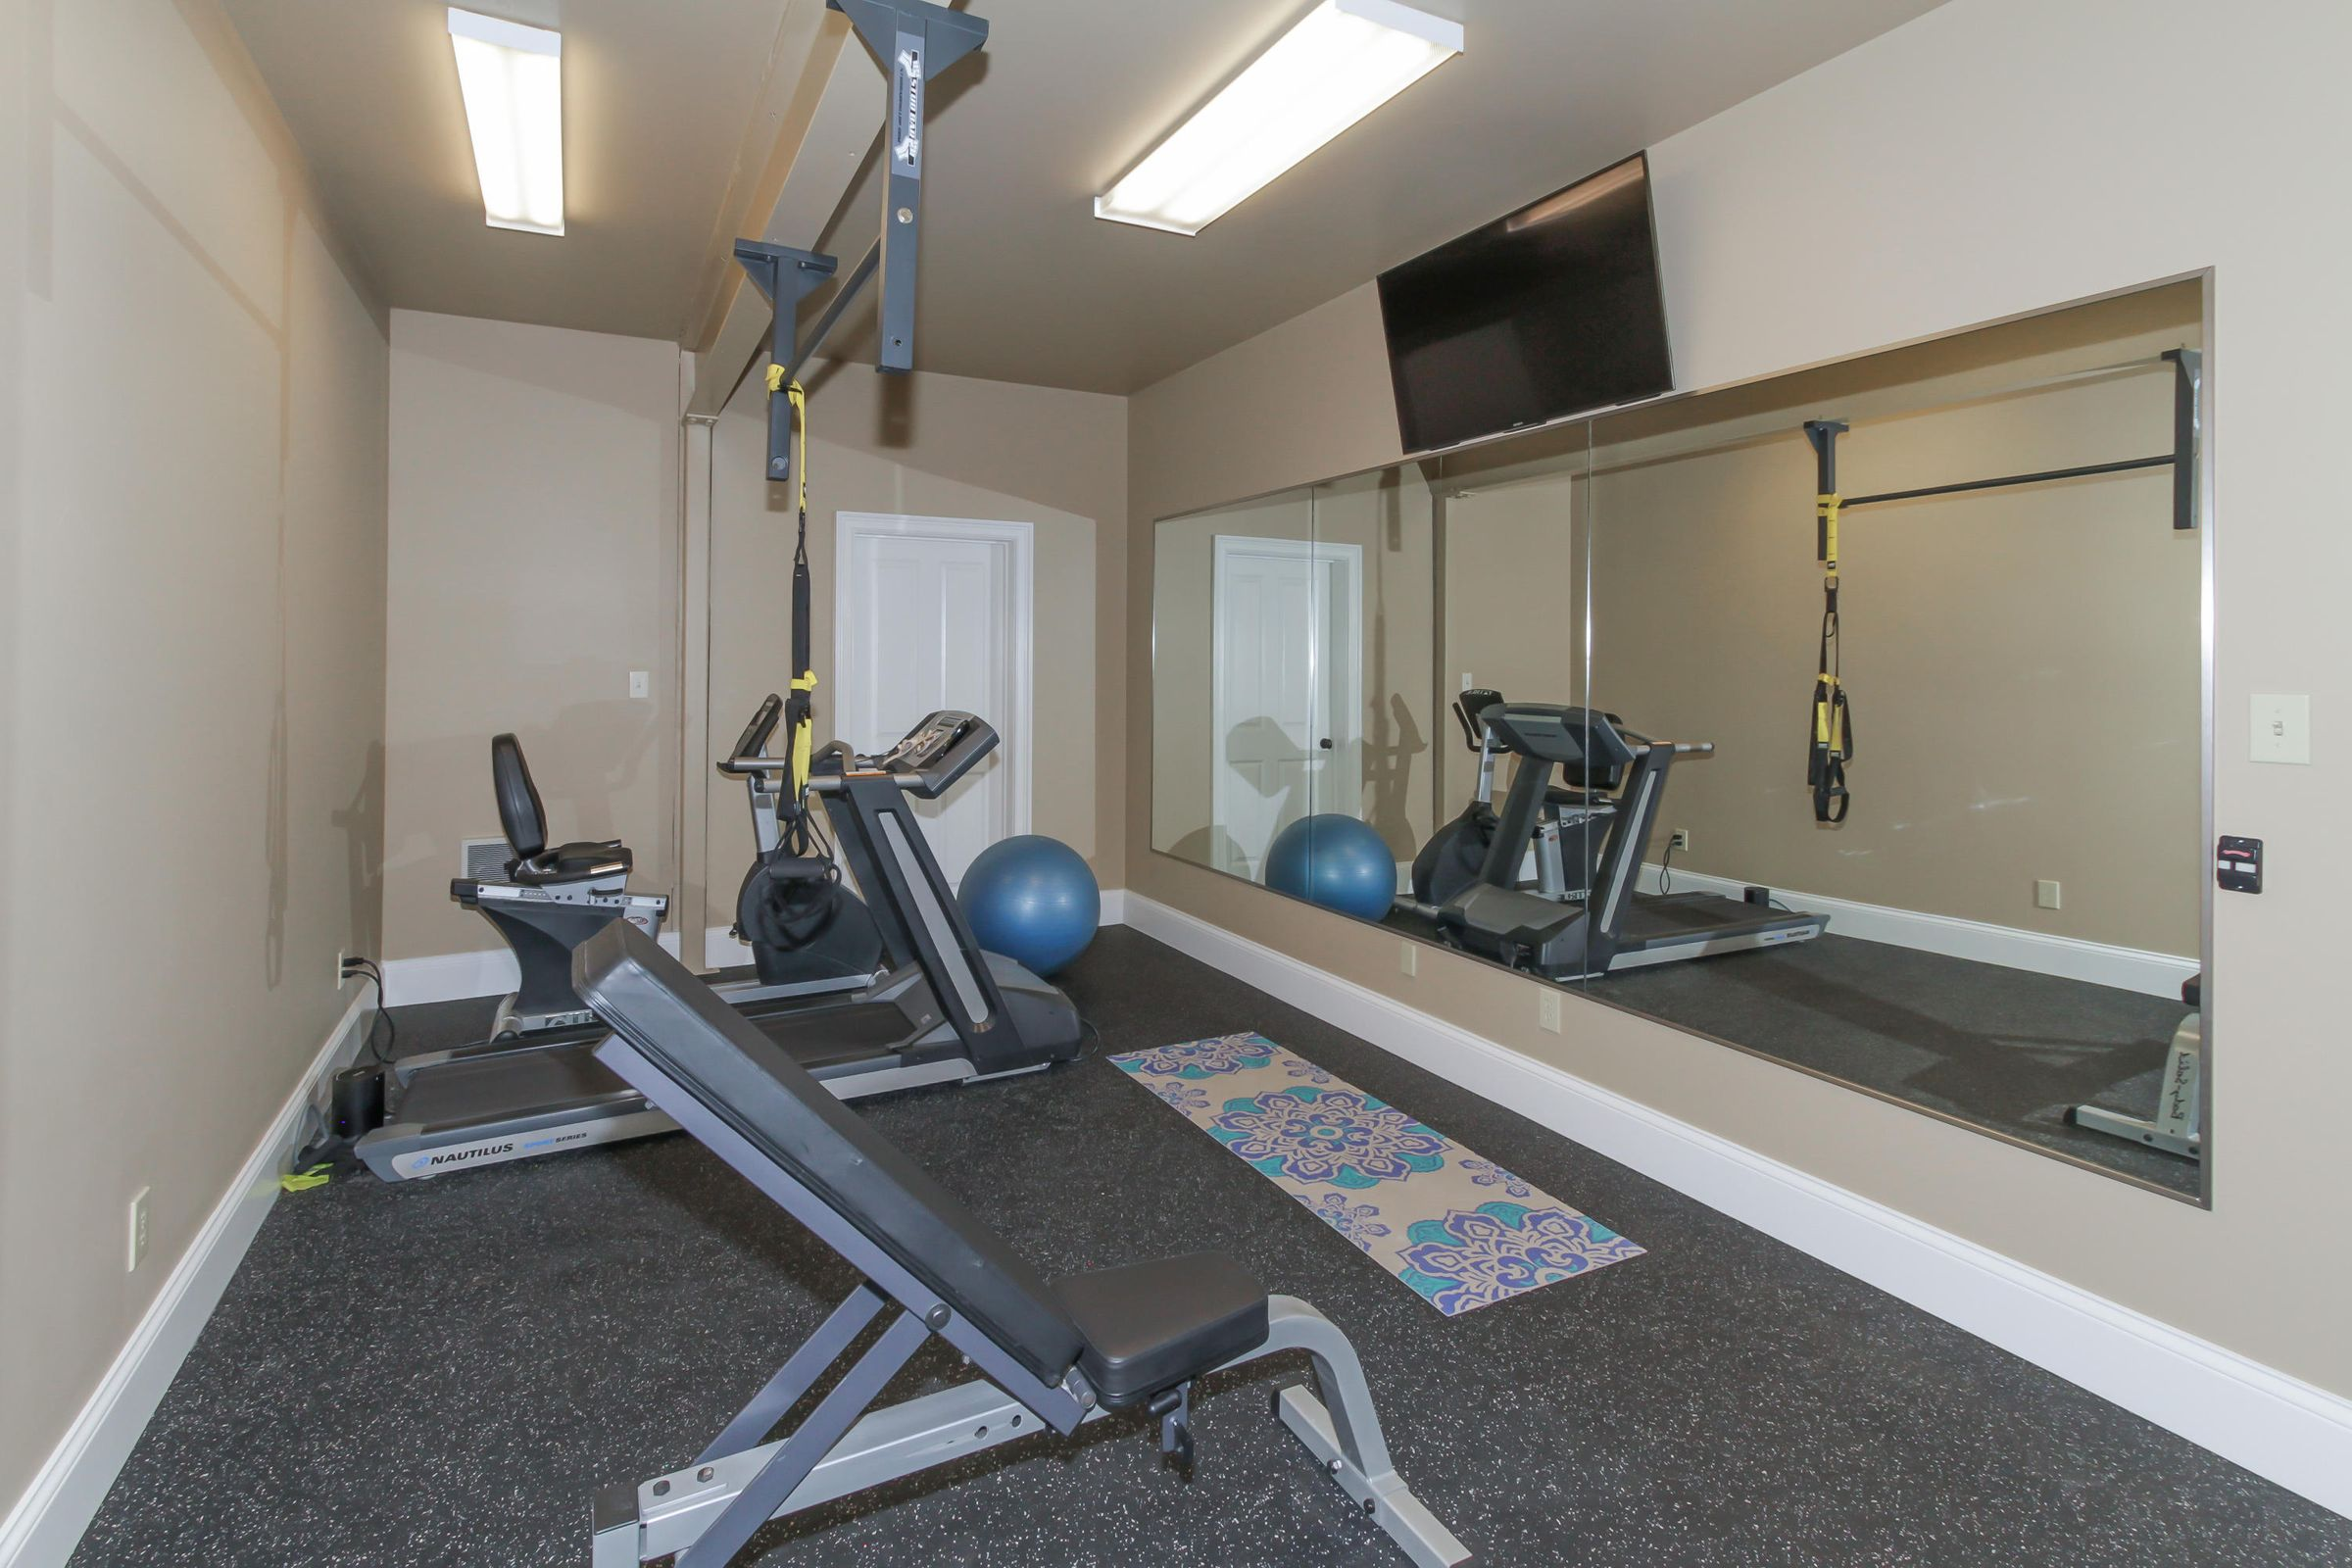 LL exercise room